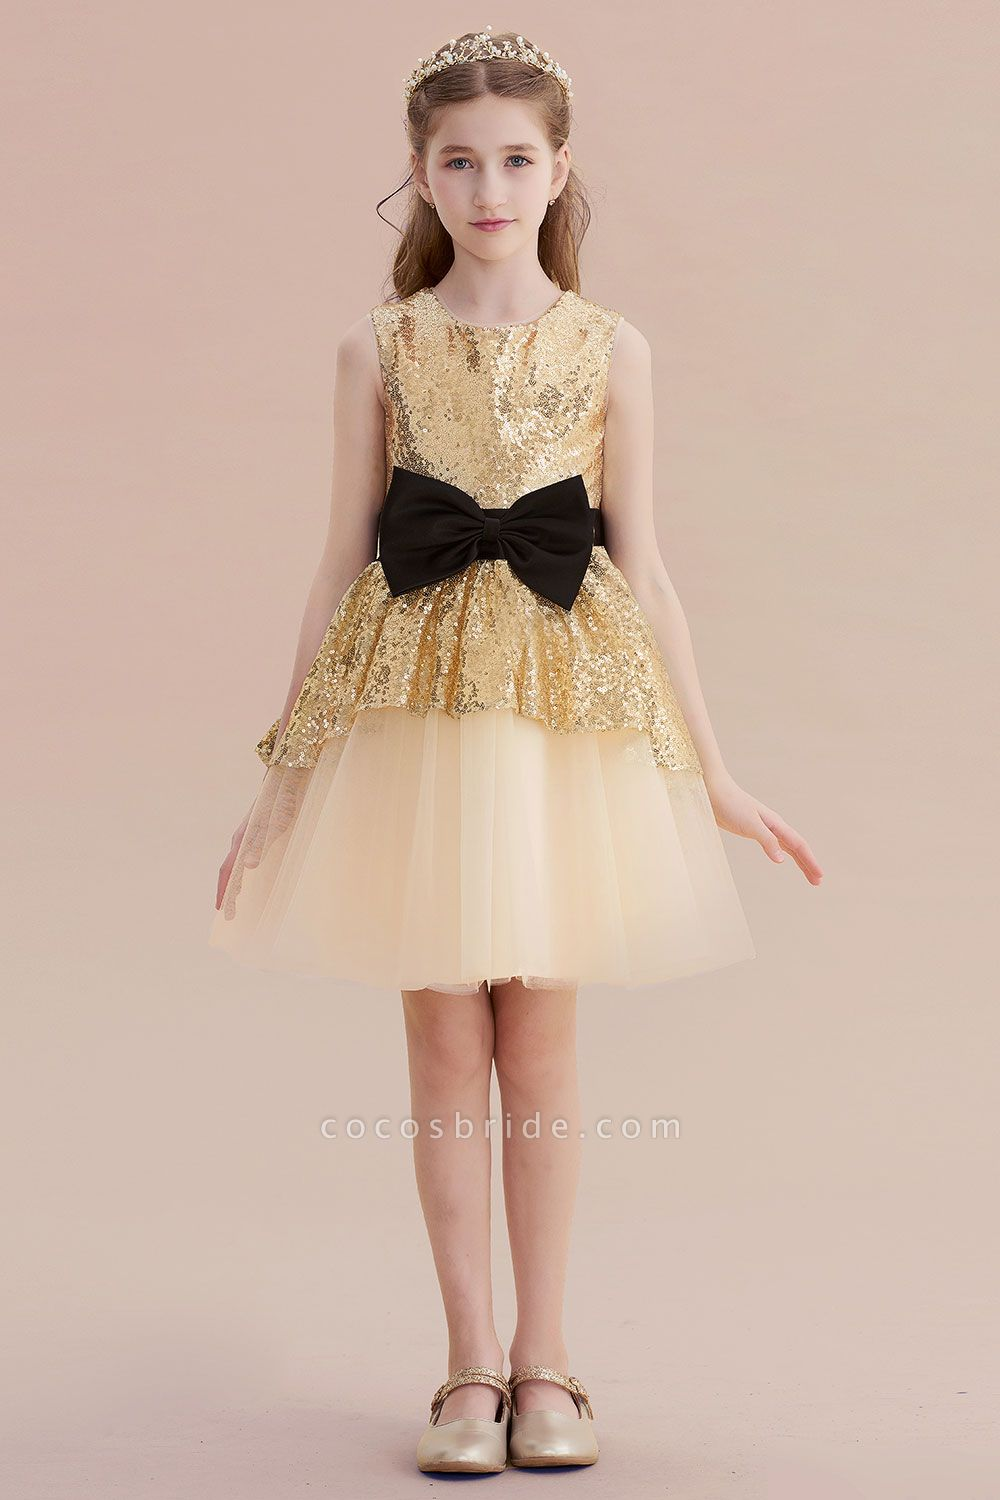 Tulle Sequins Bows Knee Length Flower Girl Dress